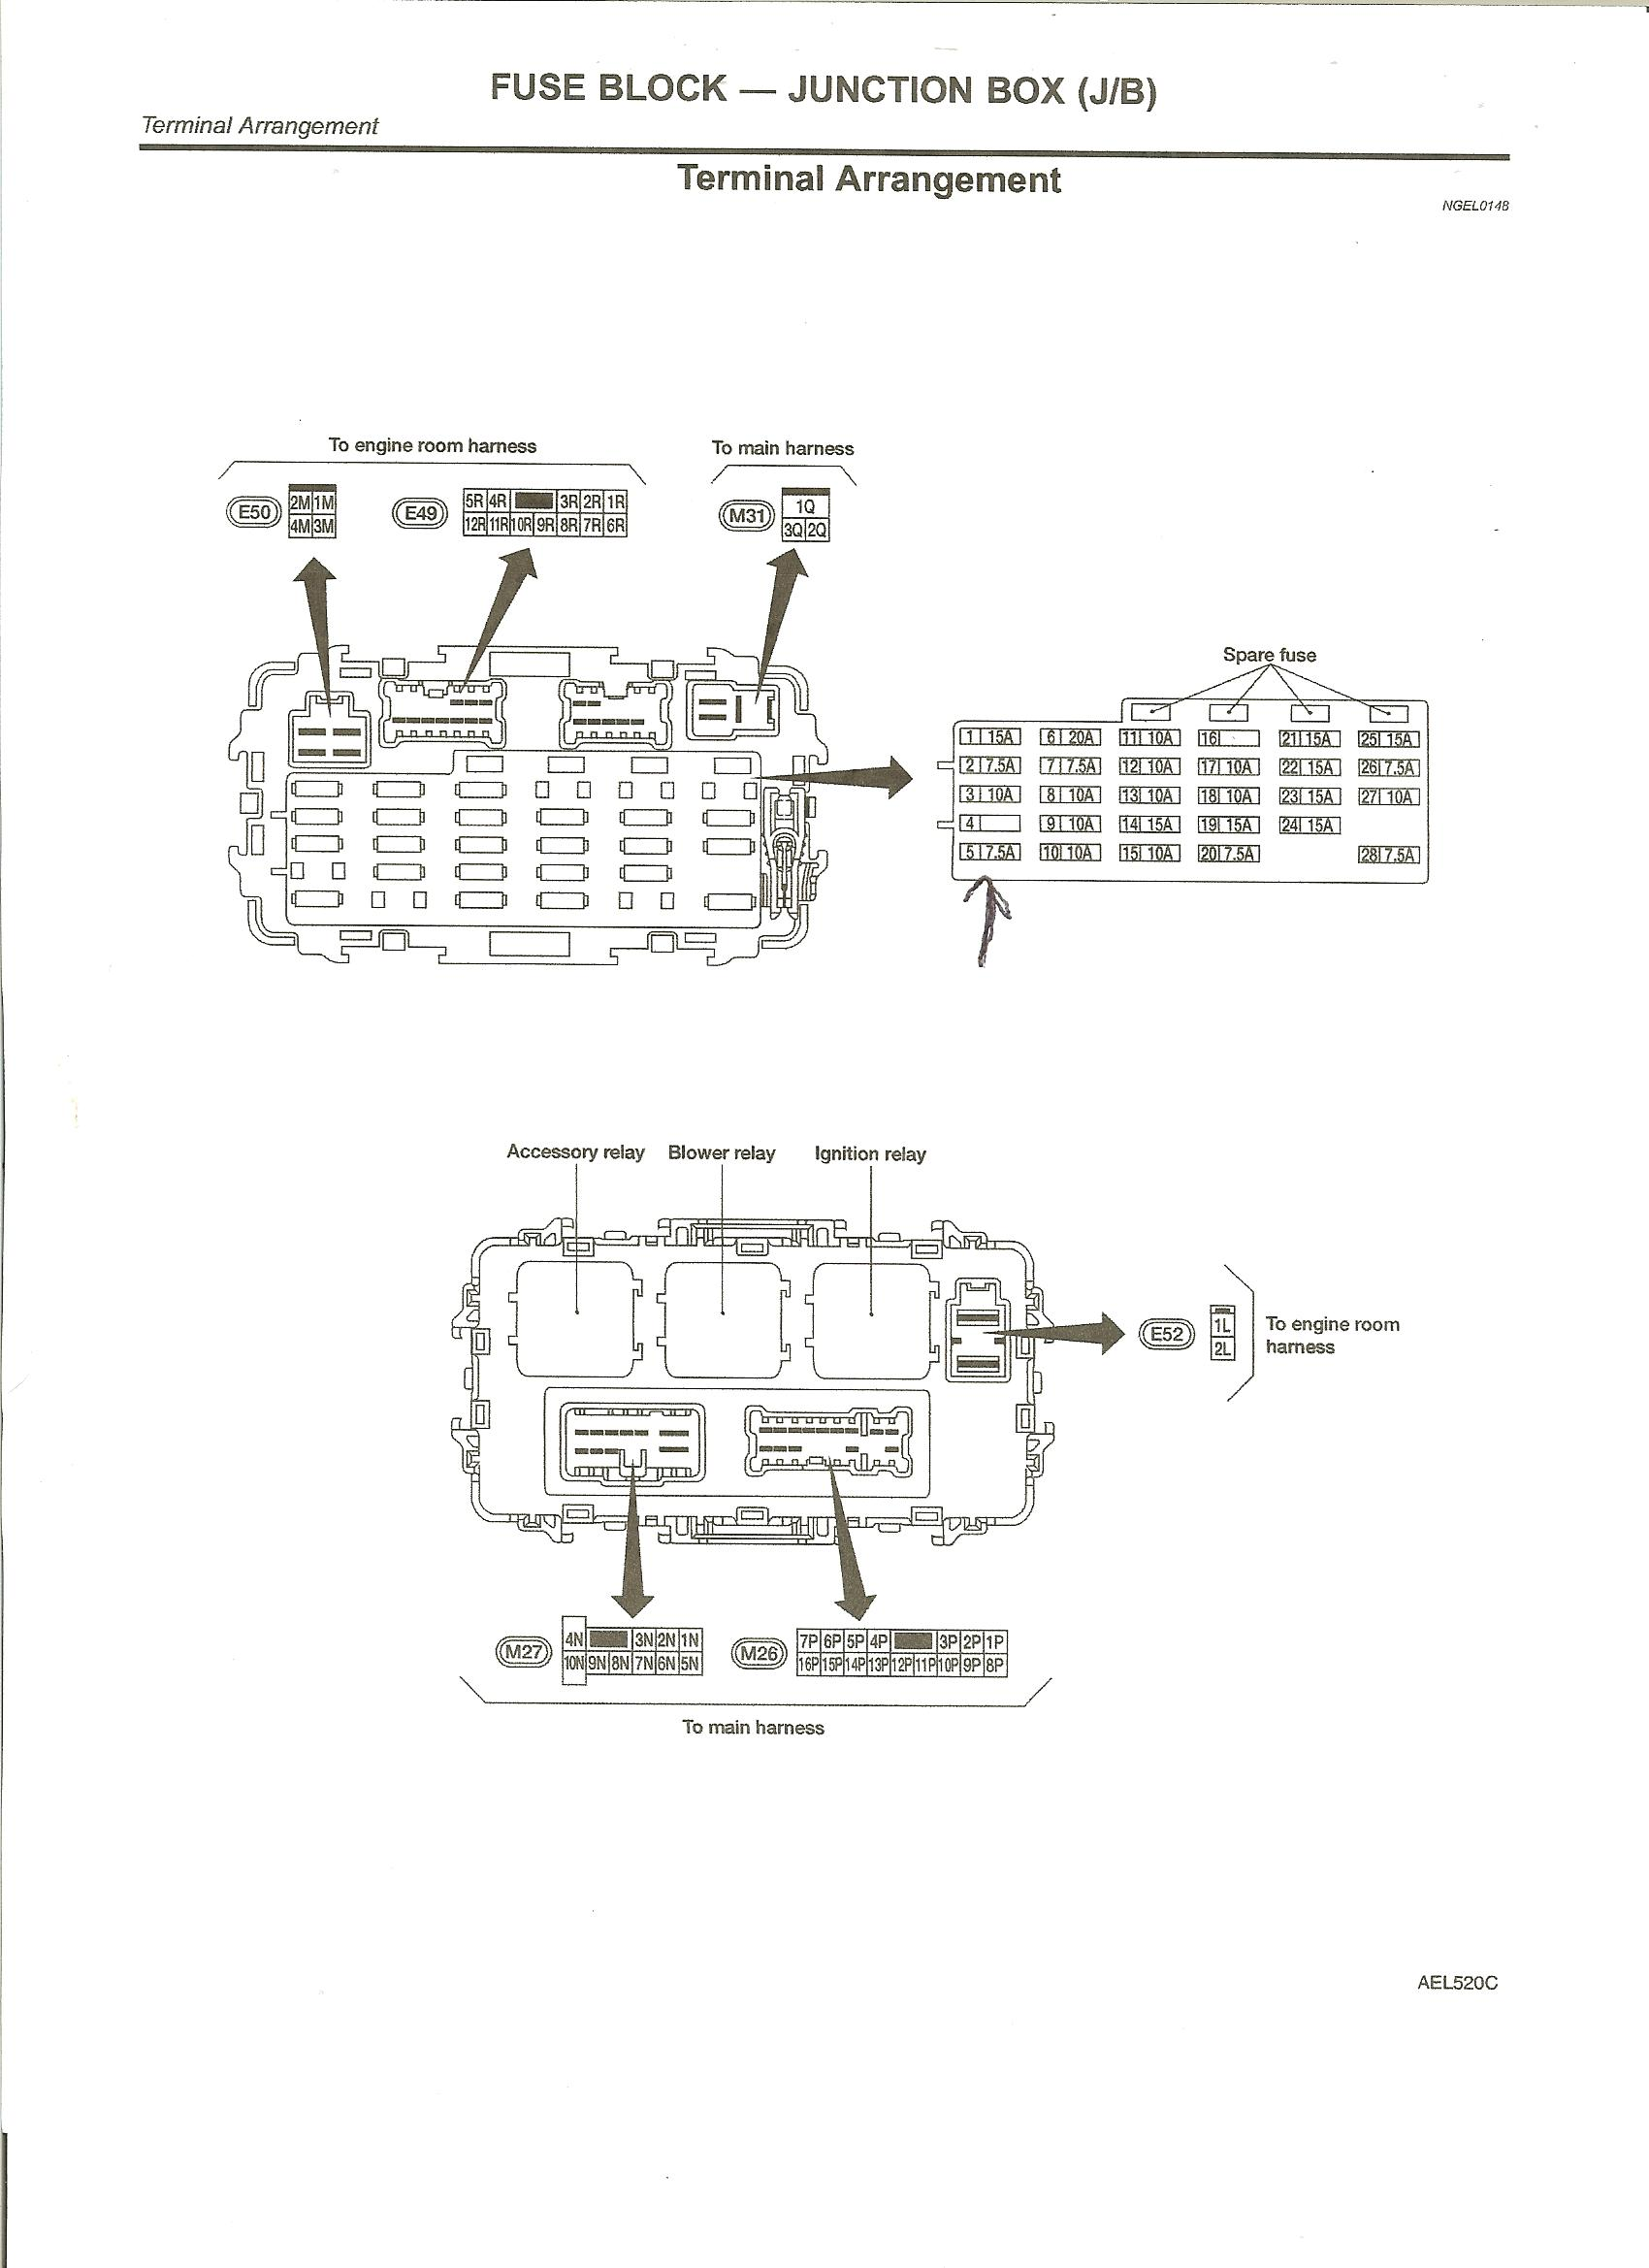 2000 Nissan Xterra Fuse Box Diagram Wiring Diagrams Frontier 3 Engine Dimarzio Free Image For 2002 2003